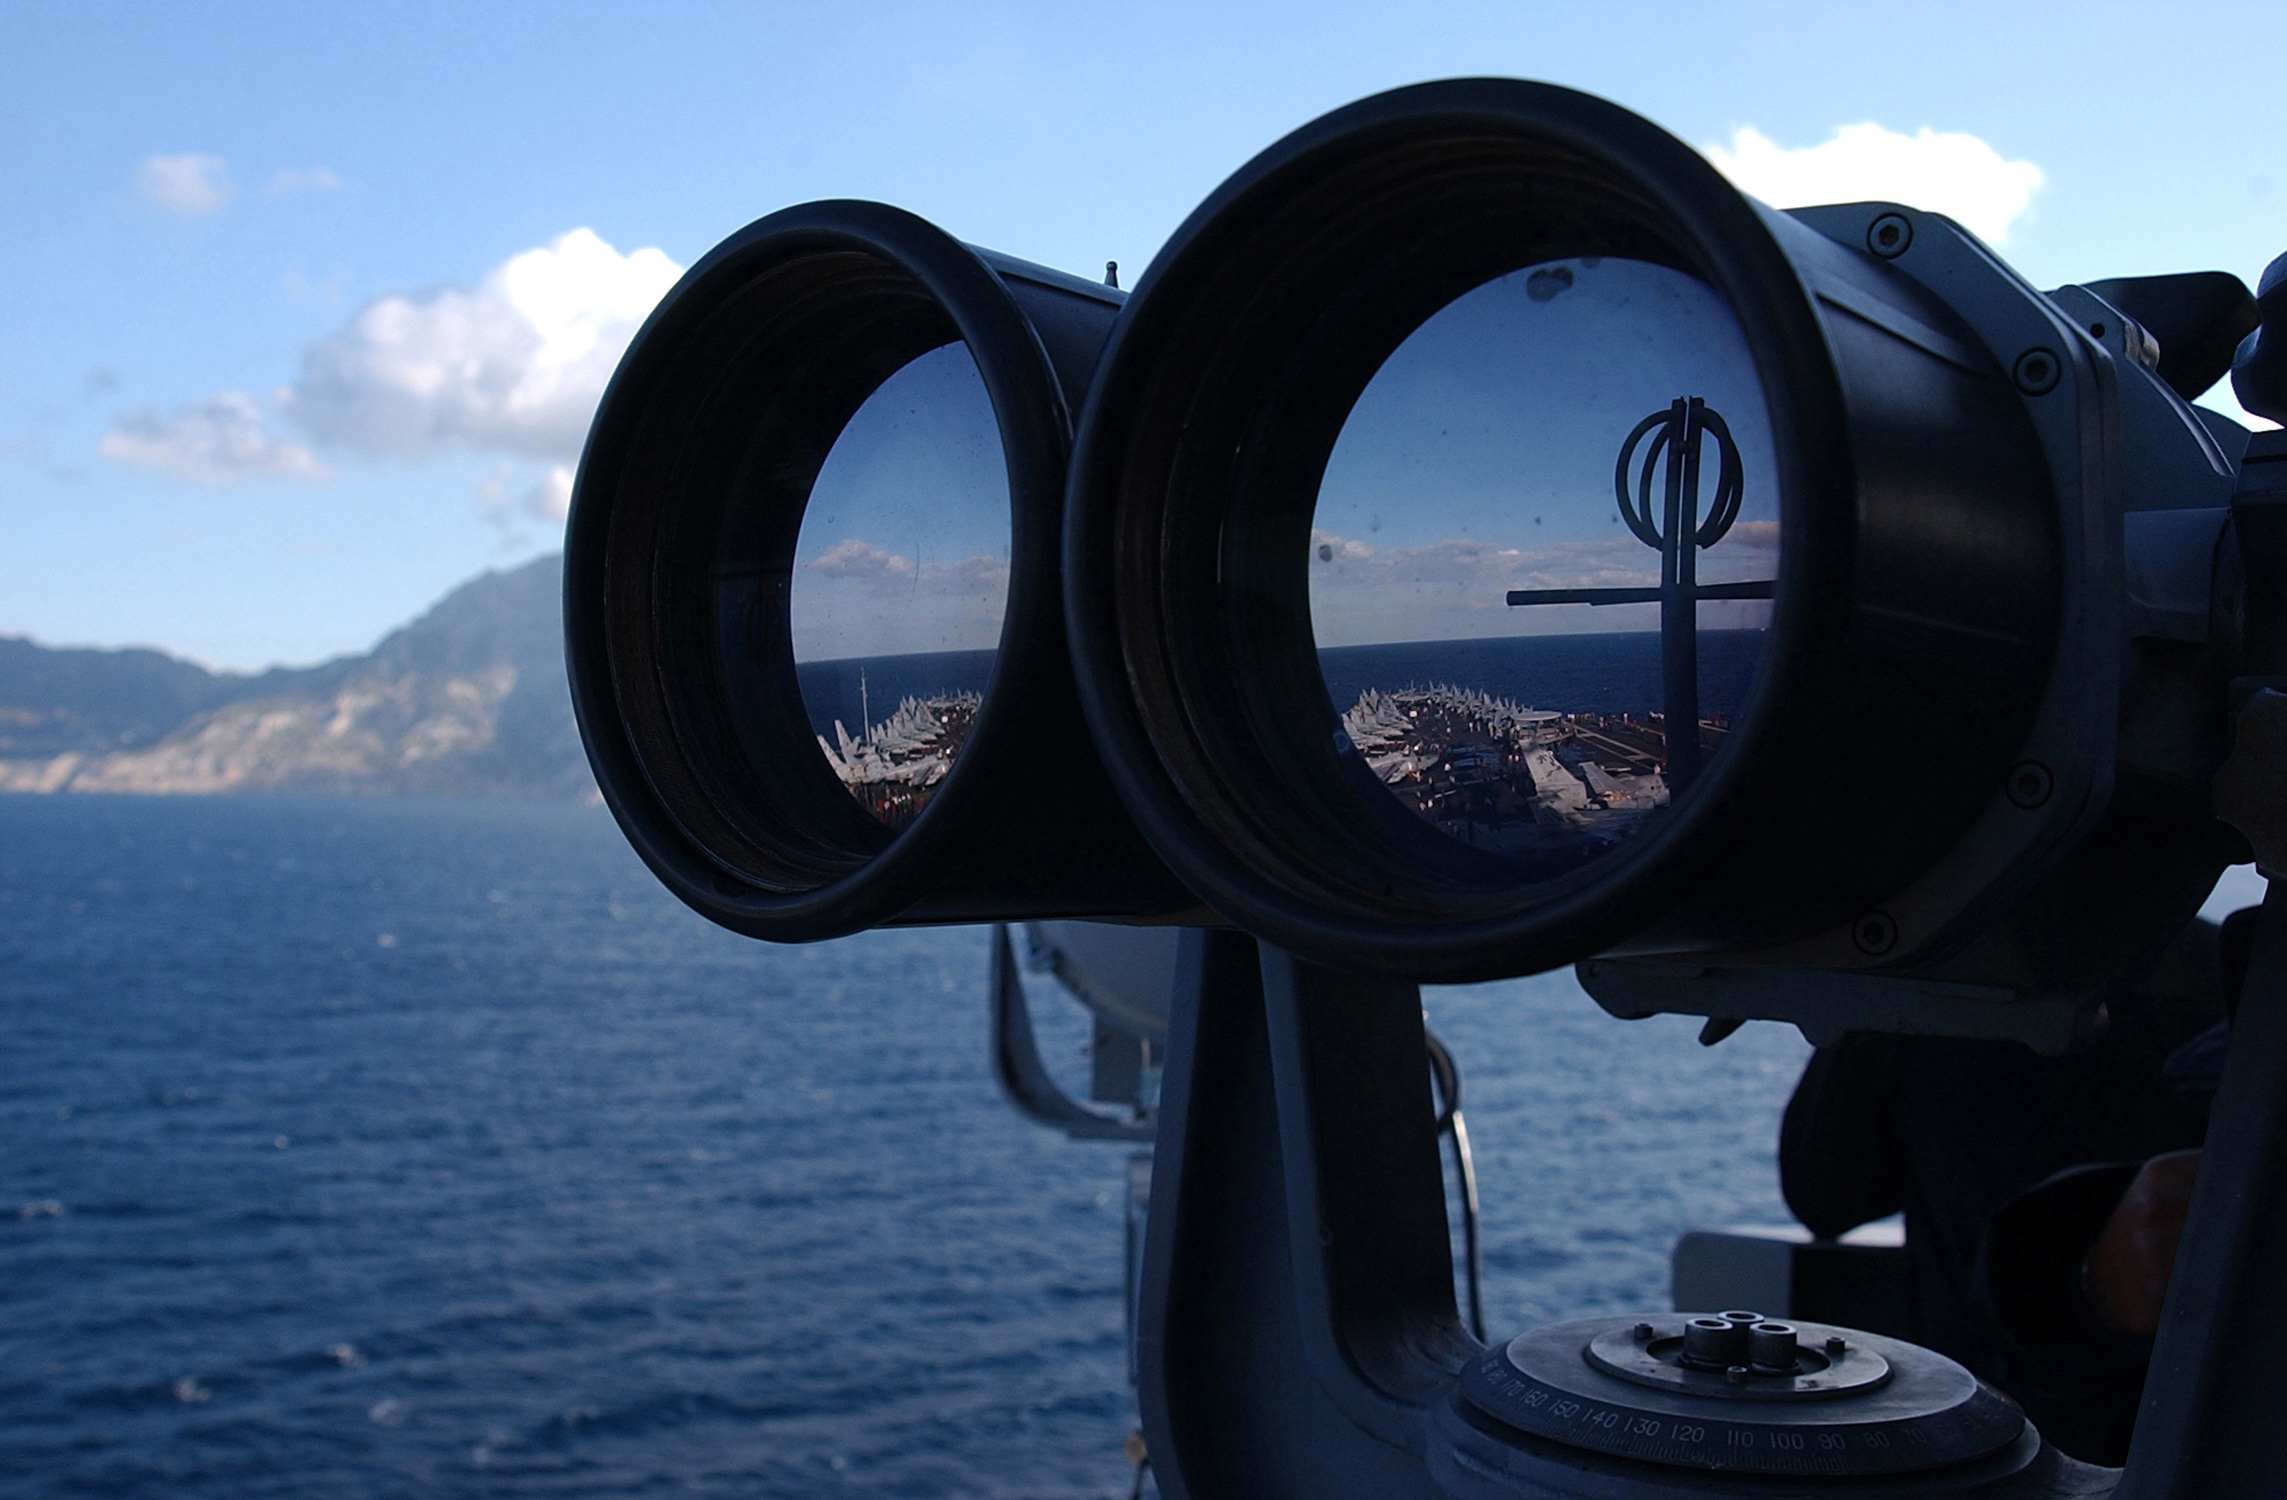 Photograph of binocular lenses from front, reflecting 2 views of an aircraft carrier